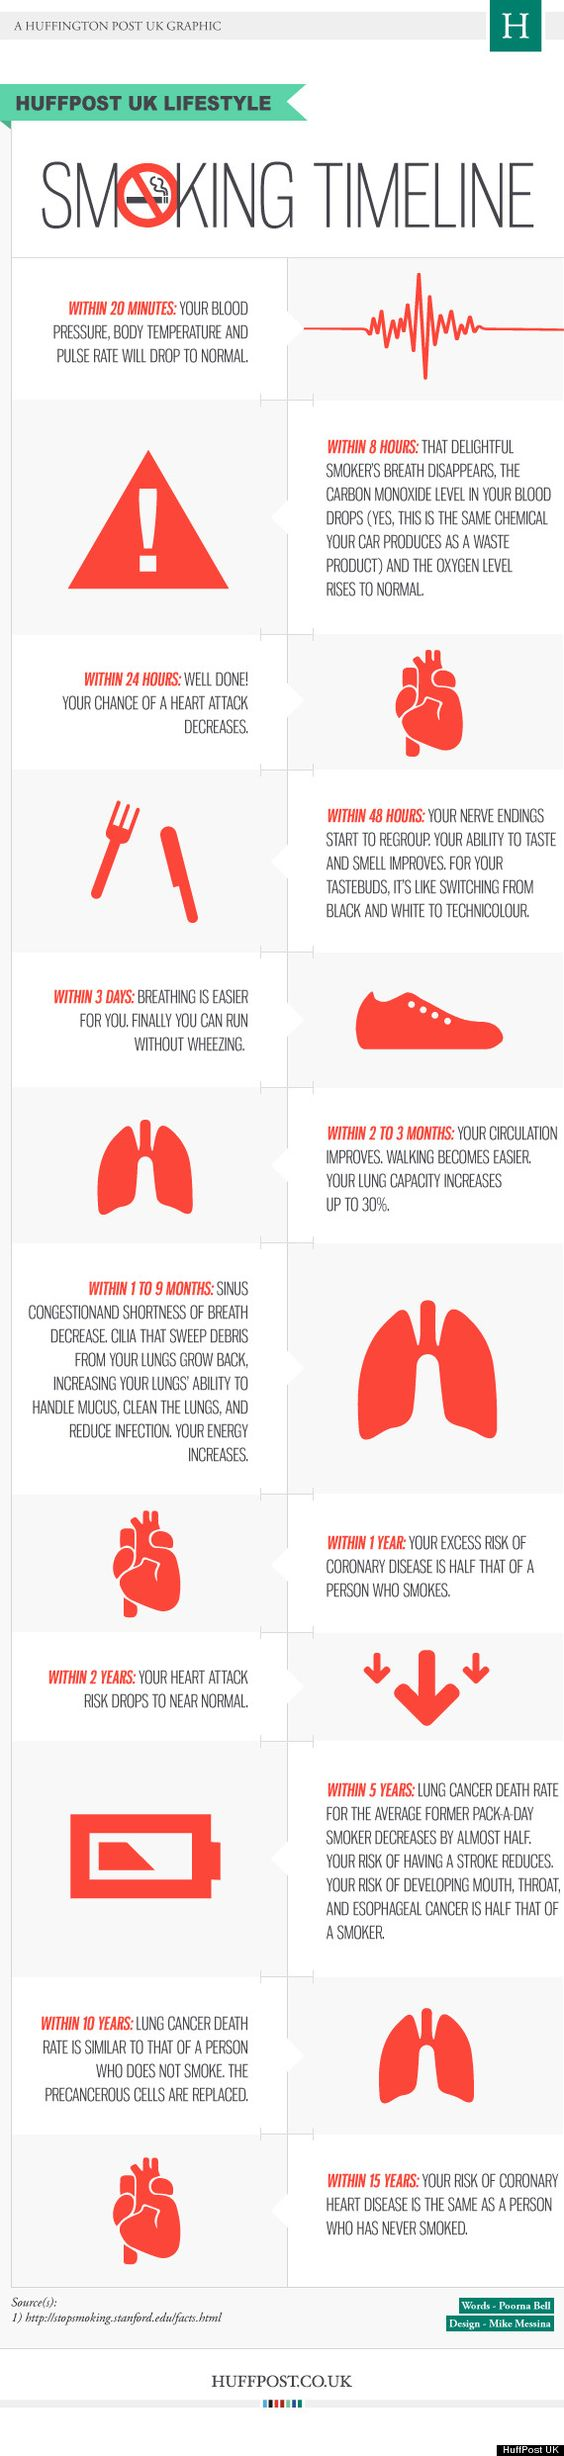 Five ways to quit smoking